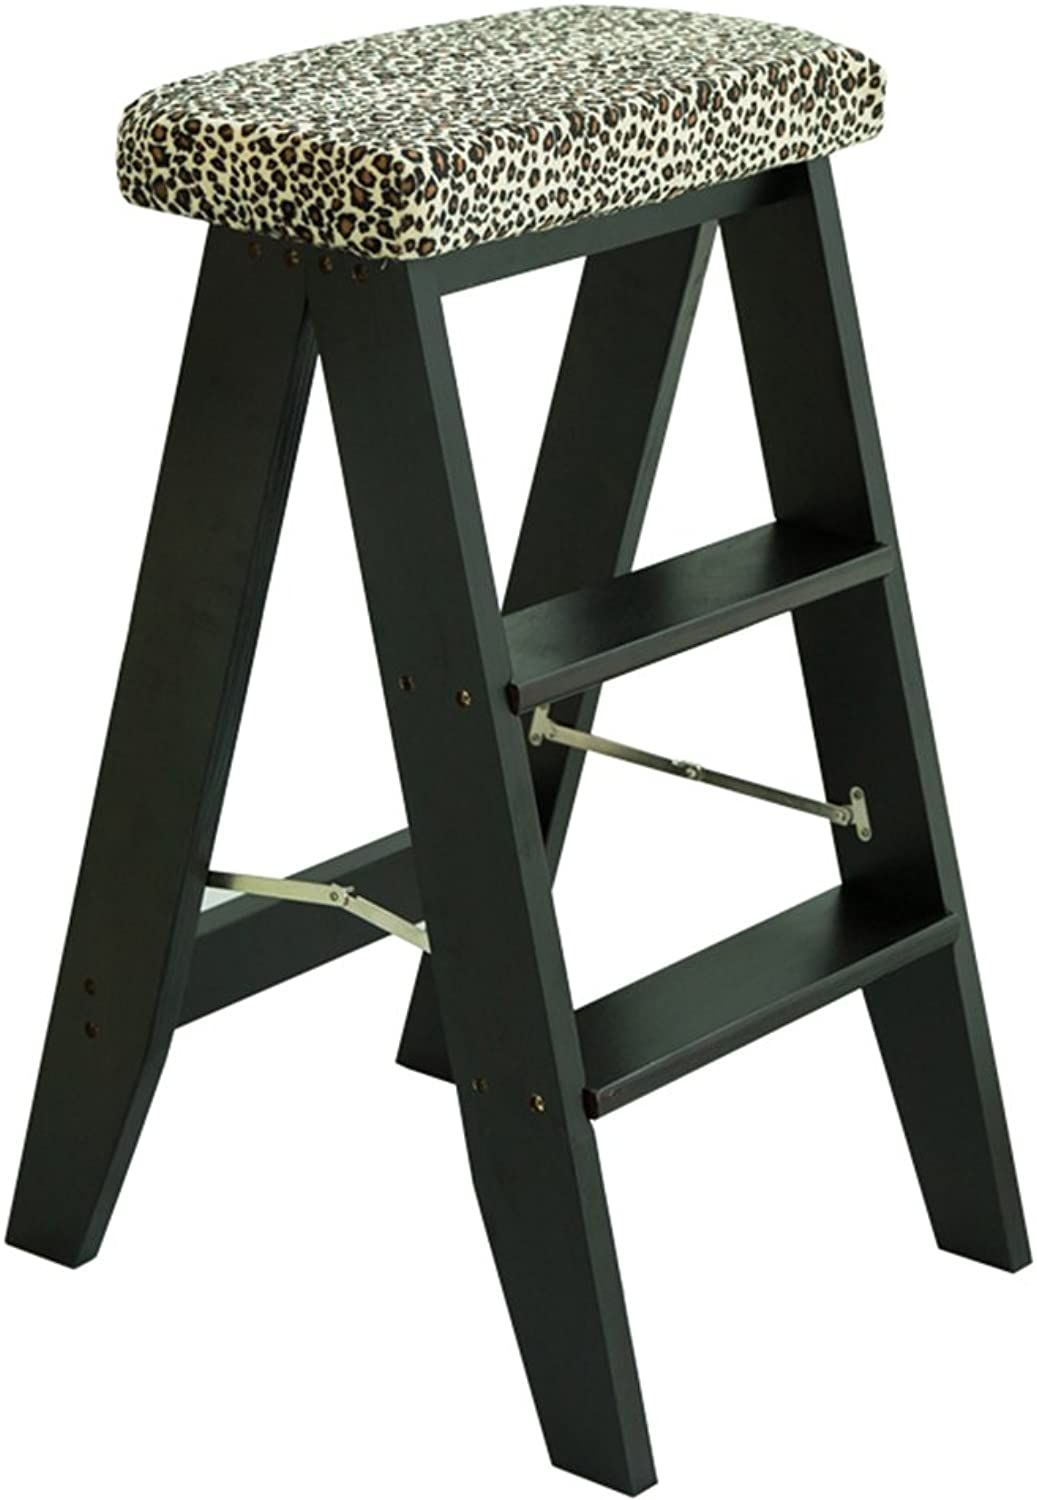 Step Ladder LQQGXL Two-Story Stair stools, Home Wood Anti-Slip Folding Ladder, Multi-Functional Combination, Creative Kitchen Step Stool, (color   Black)